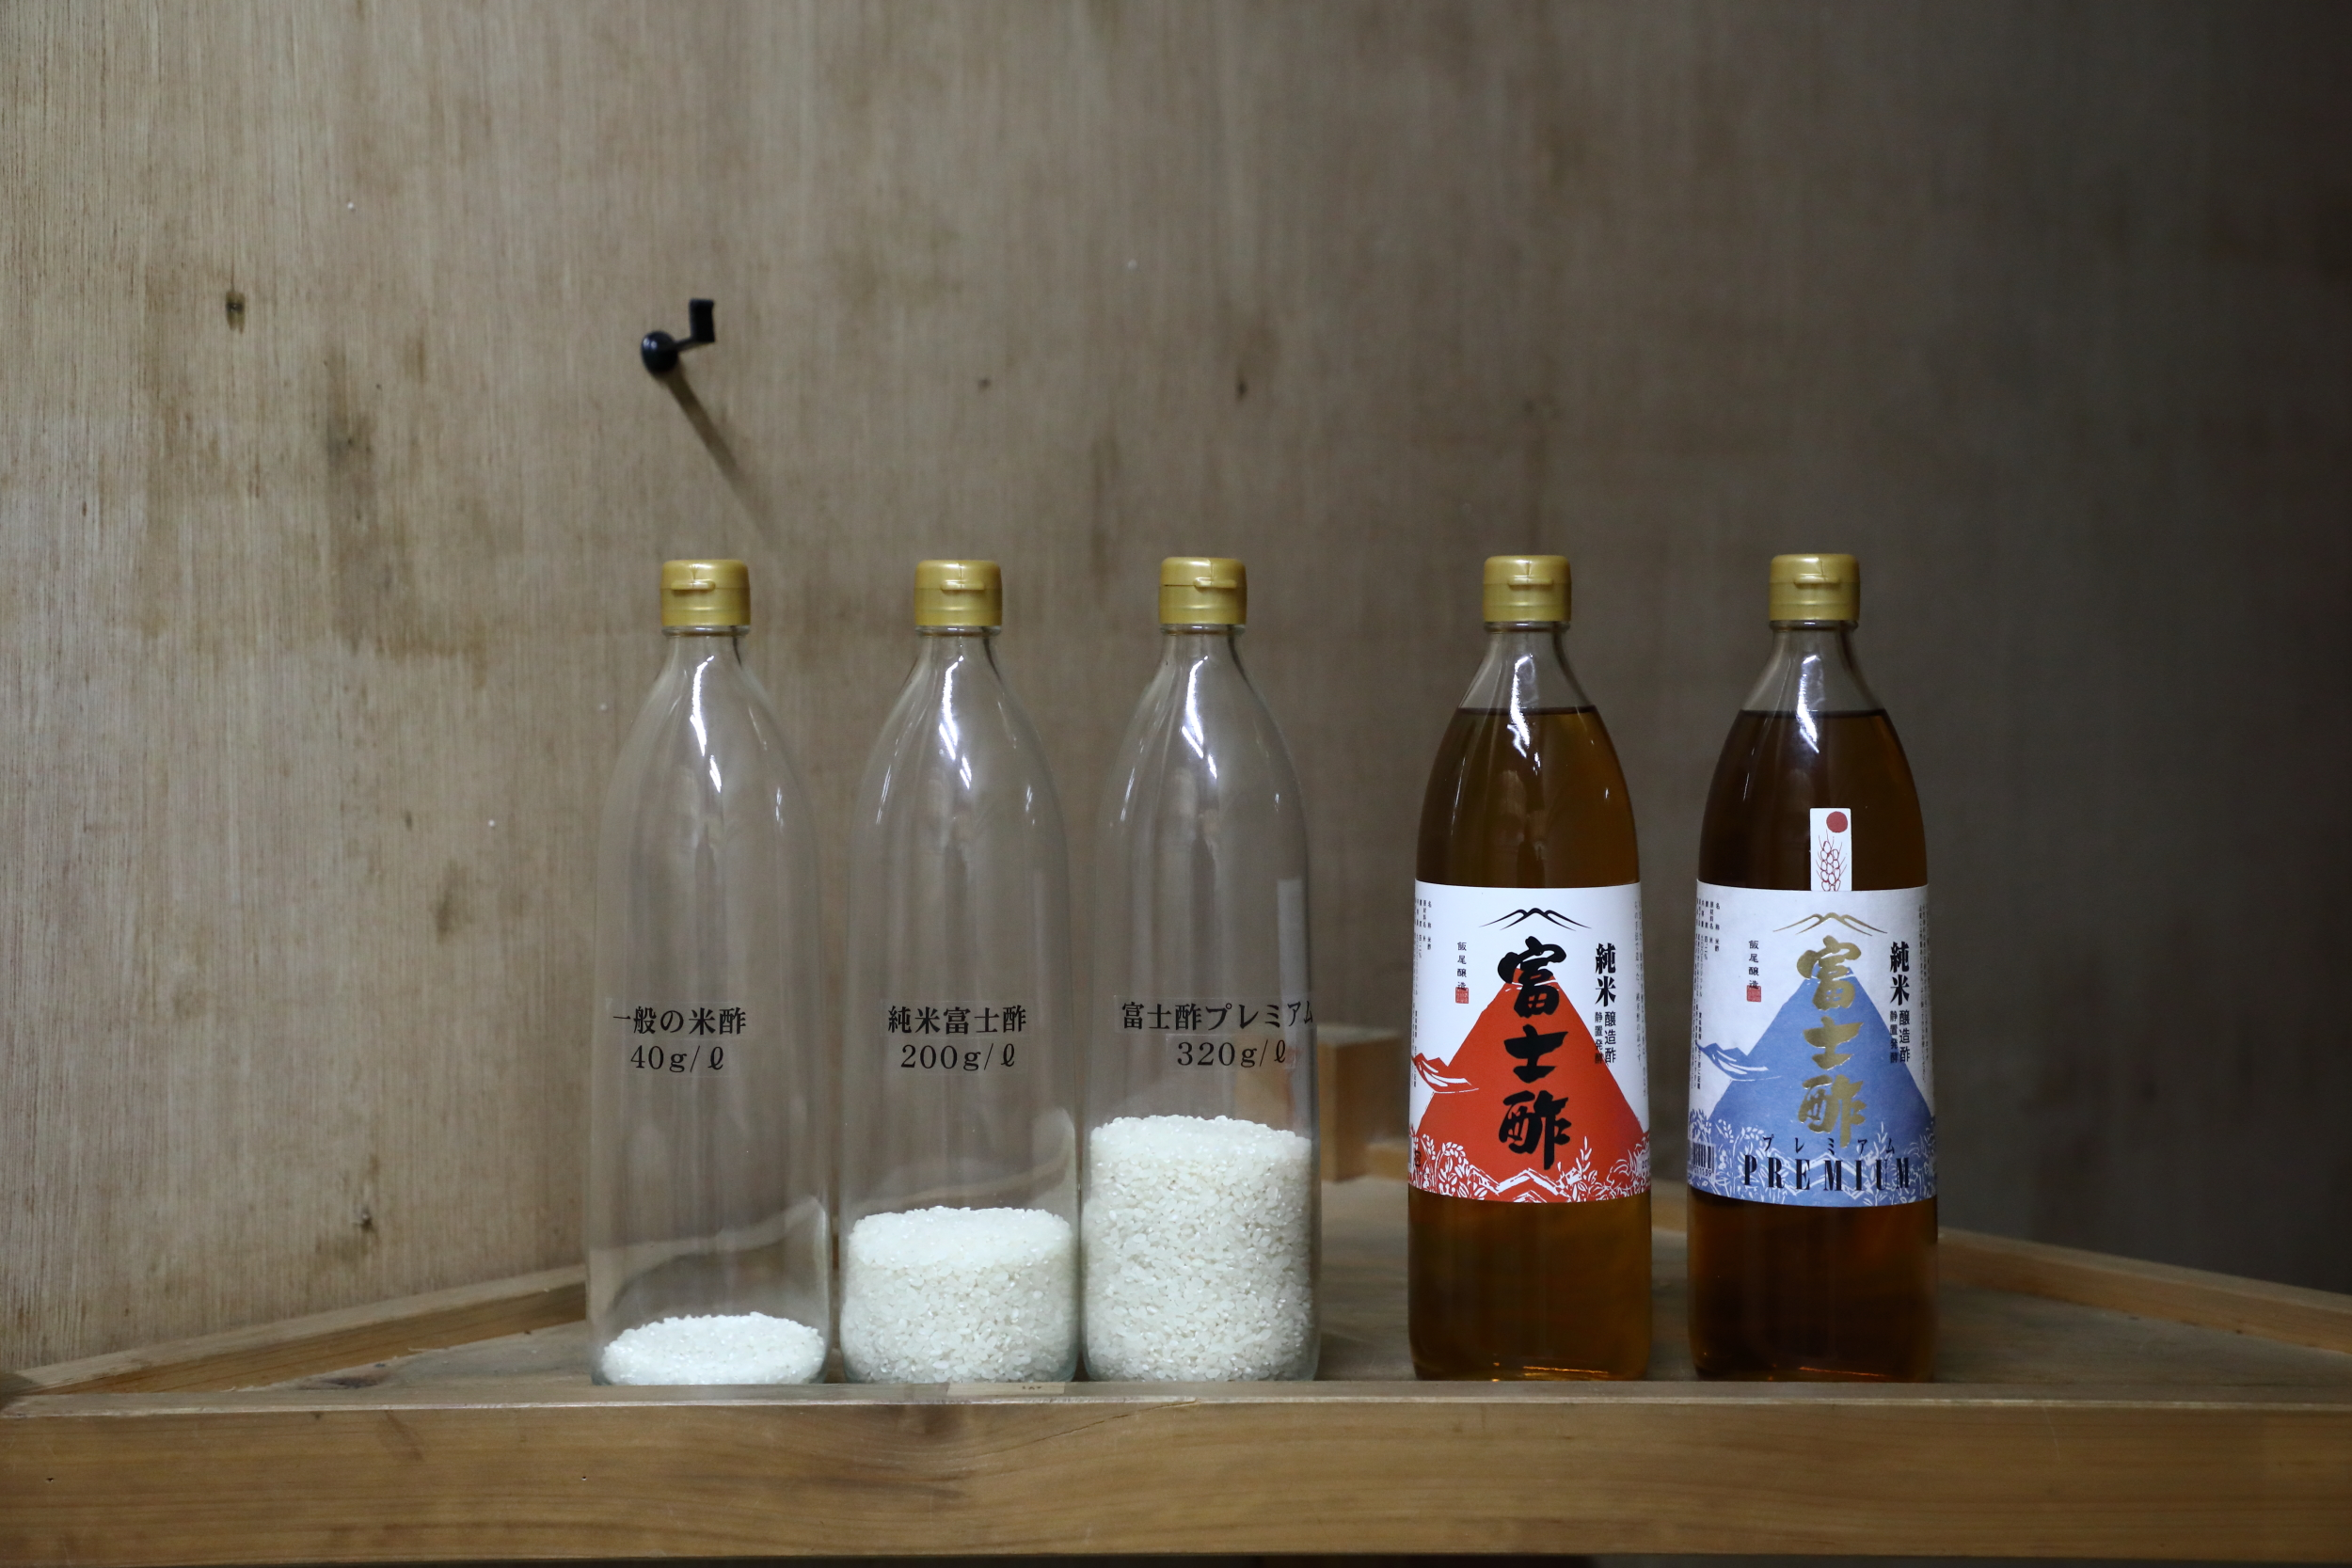 "A comparison of the rice content of commercially-made rice vinegar on the far left with Iio Jozo's ""Fuji-zu"" rice vinegars. The second bottle from the left corresponds to the red label ""Junmai Fujisu"" rice vinegar and the center bottle corresponds to the blue label ""Fujisu Premium"" rice vinegar."